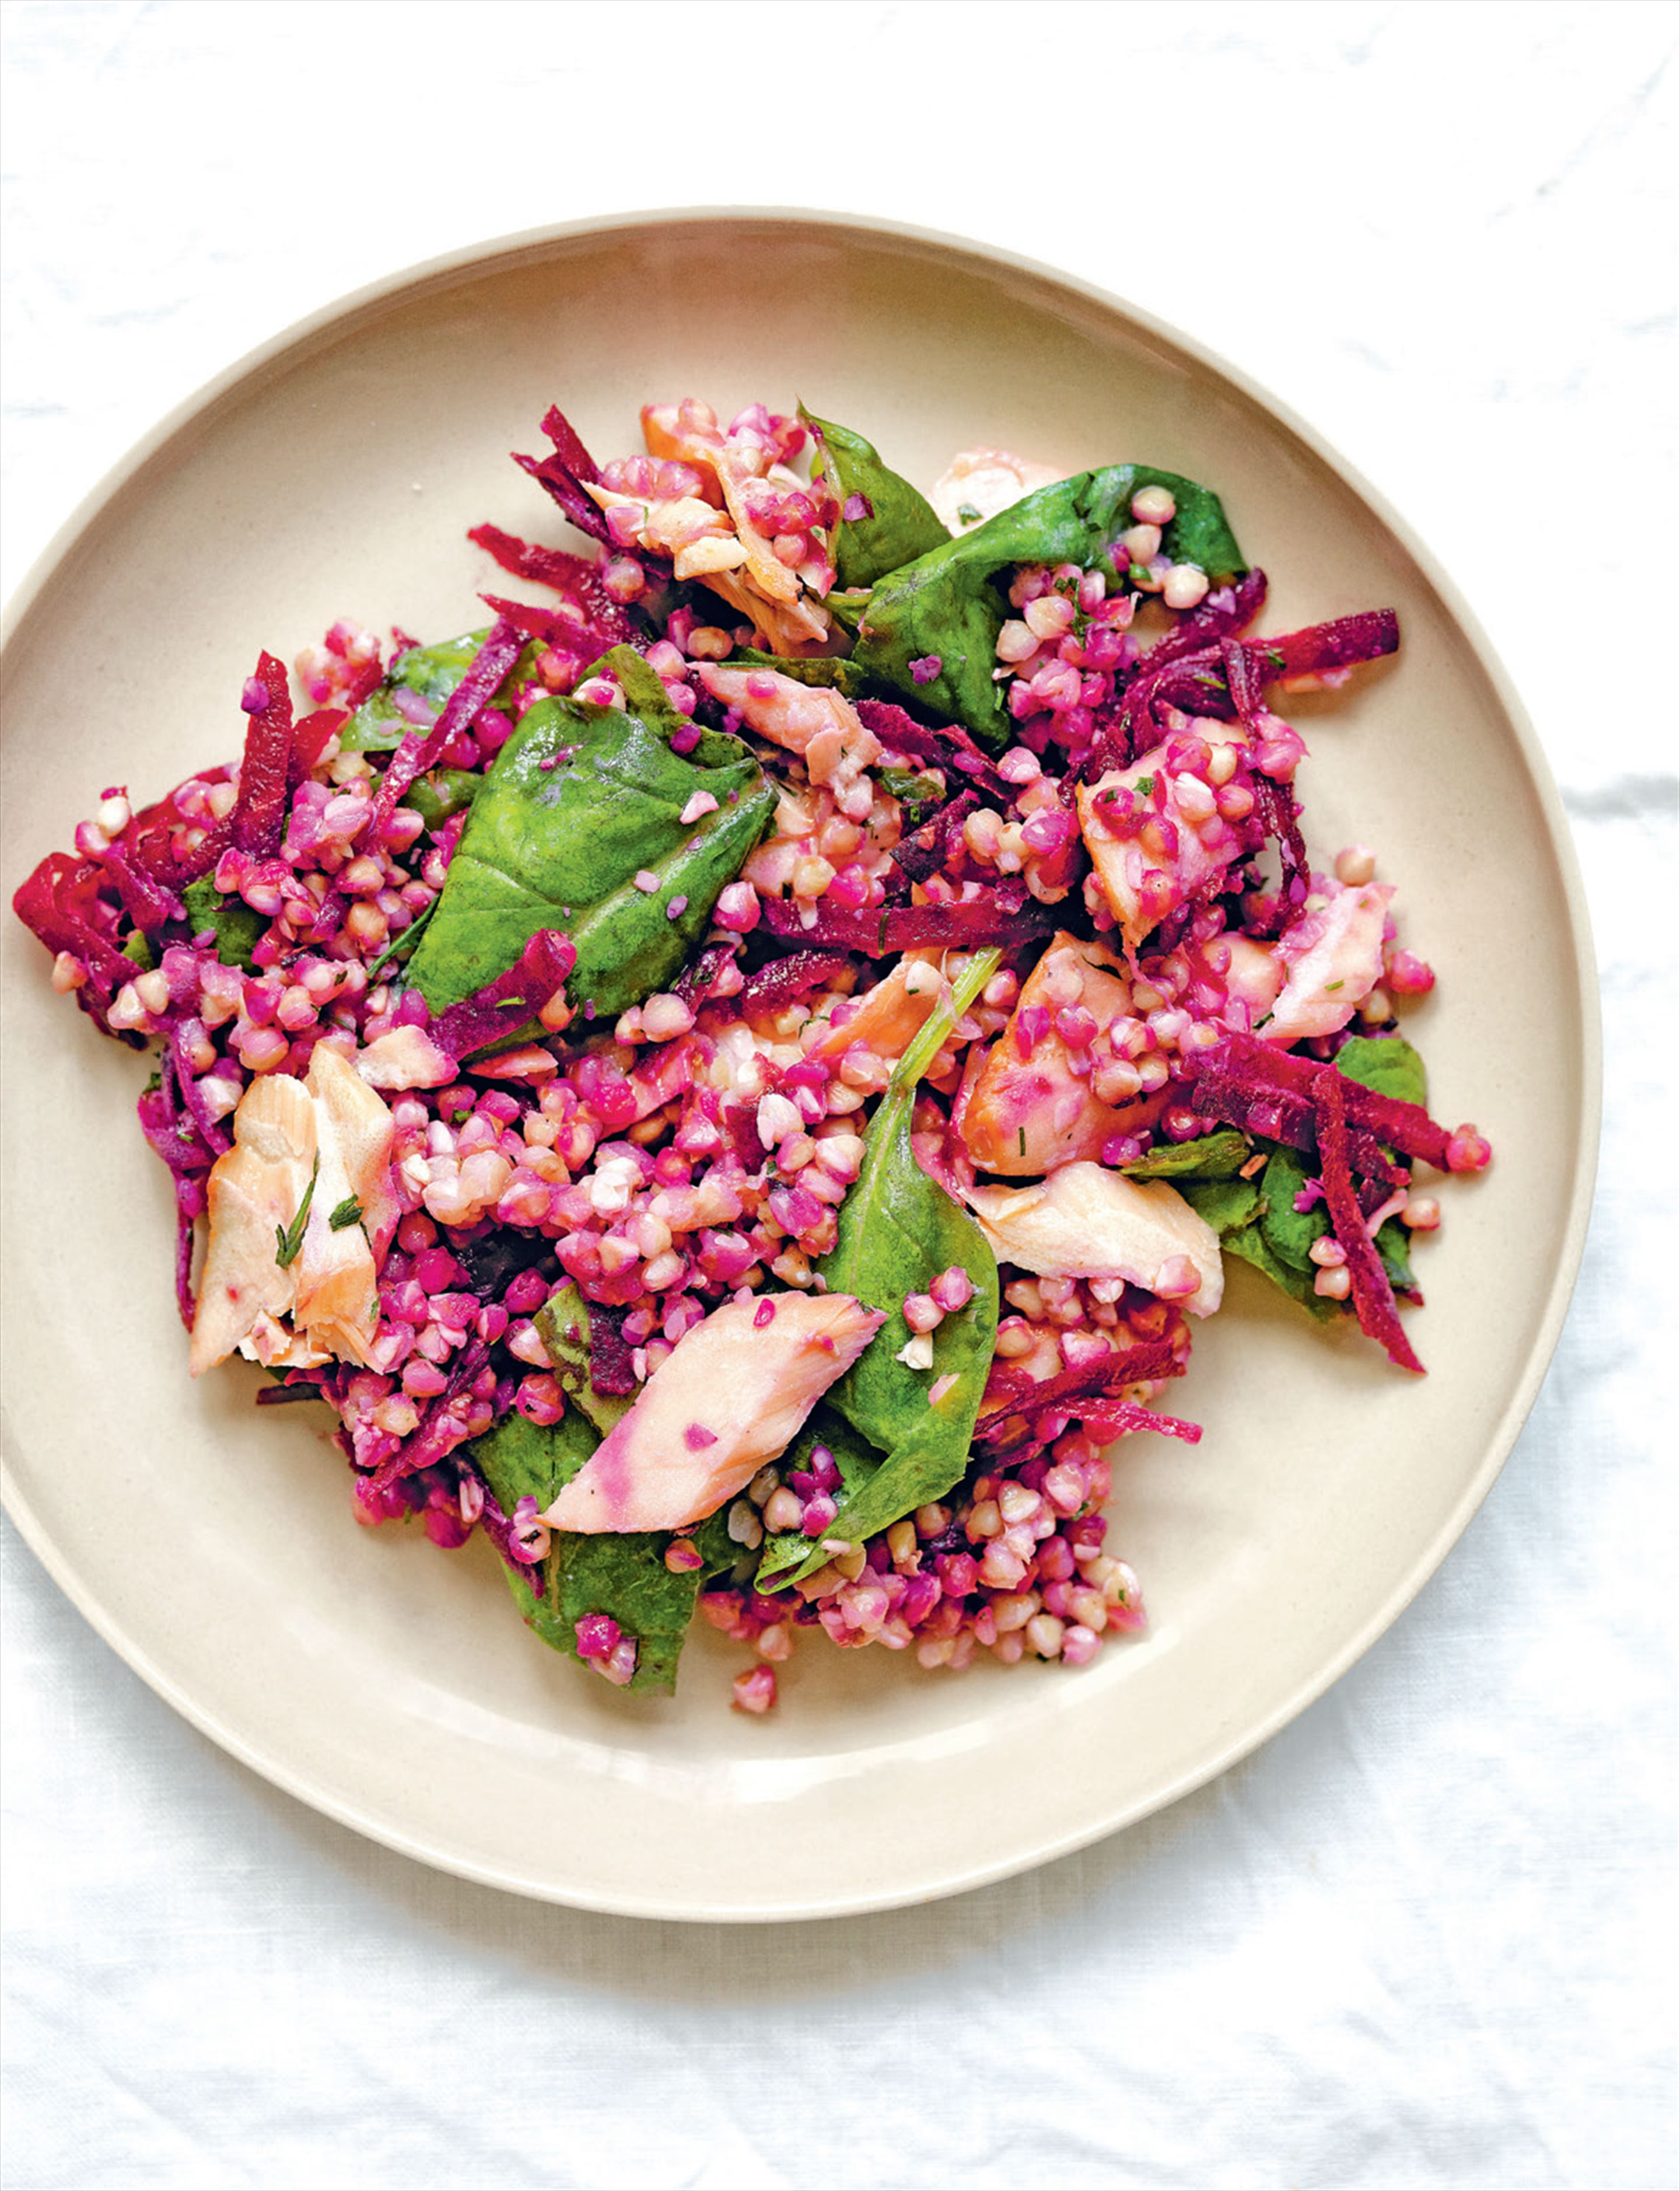 Buckwheat & salmon salad with beetroot & spinach